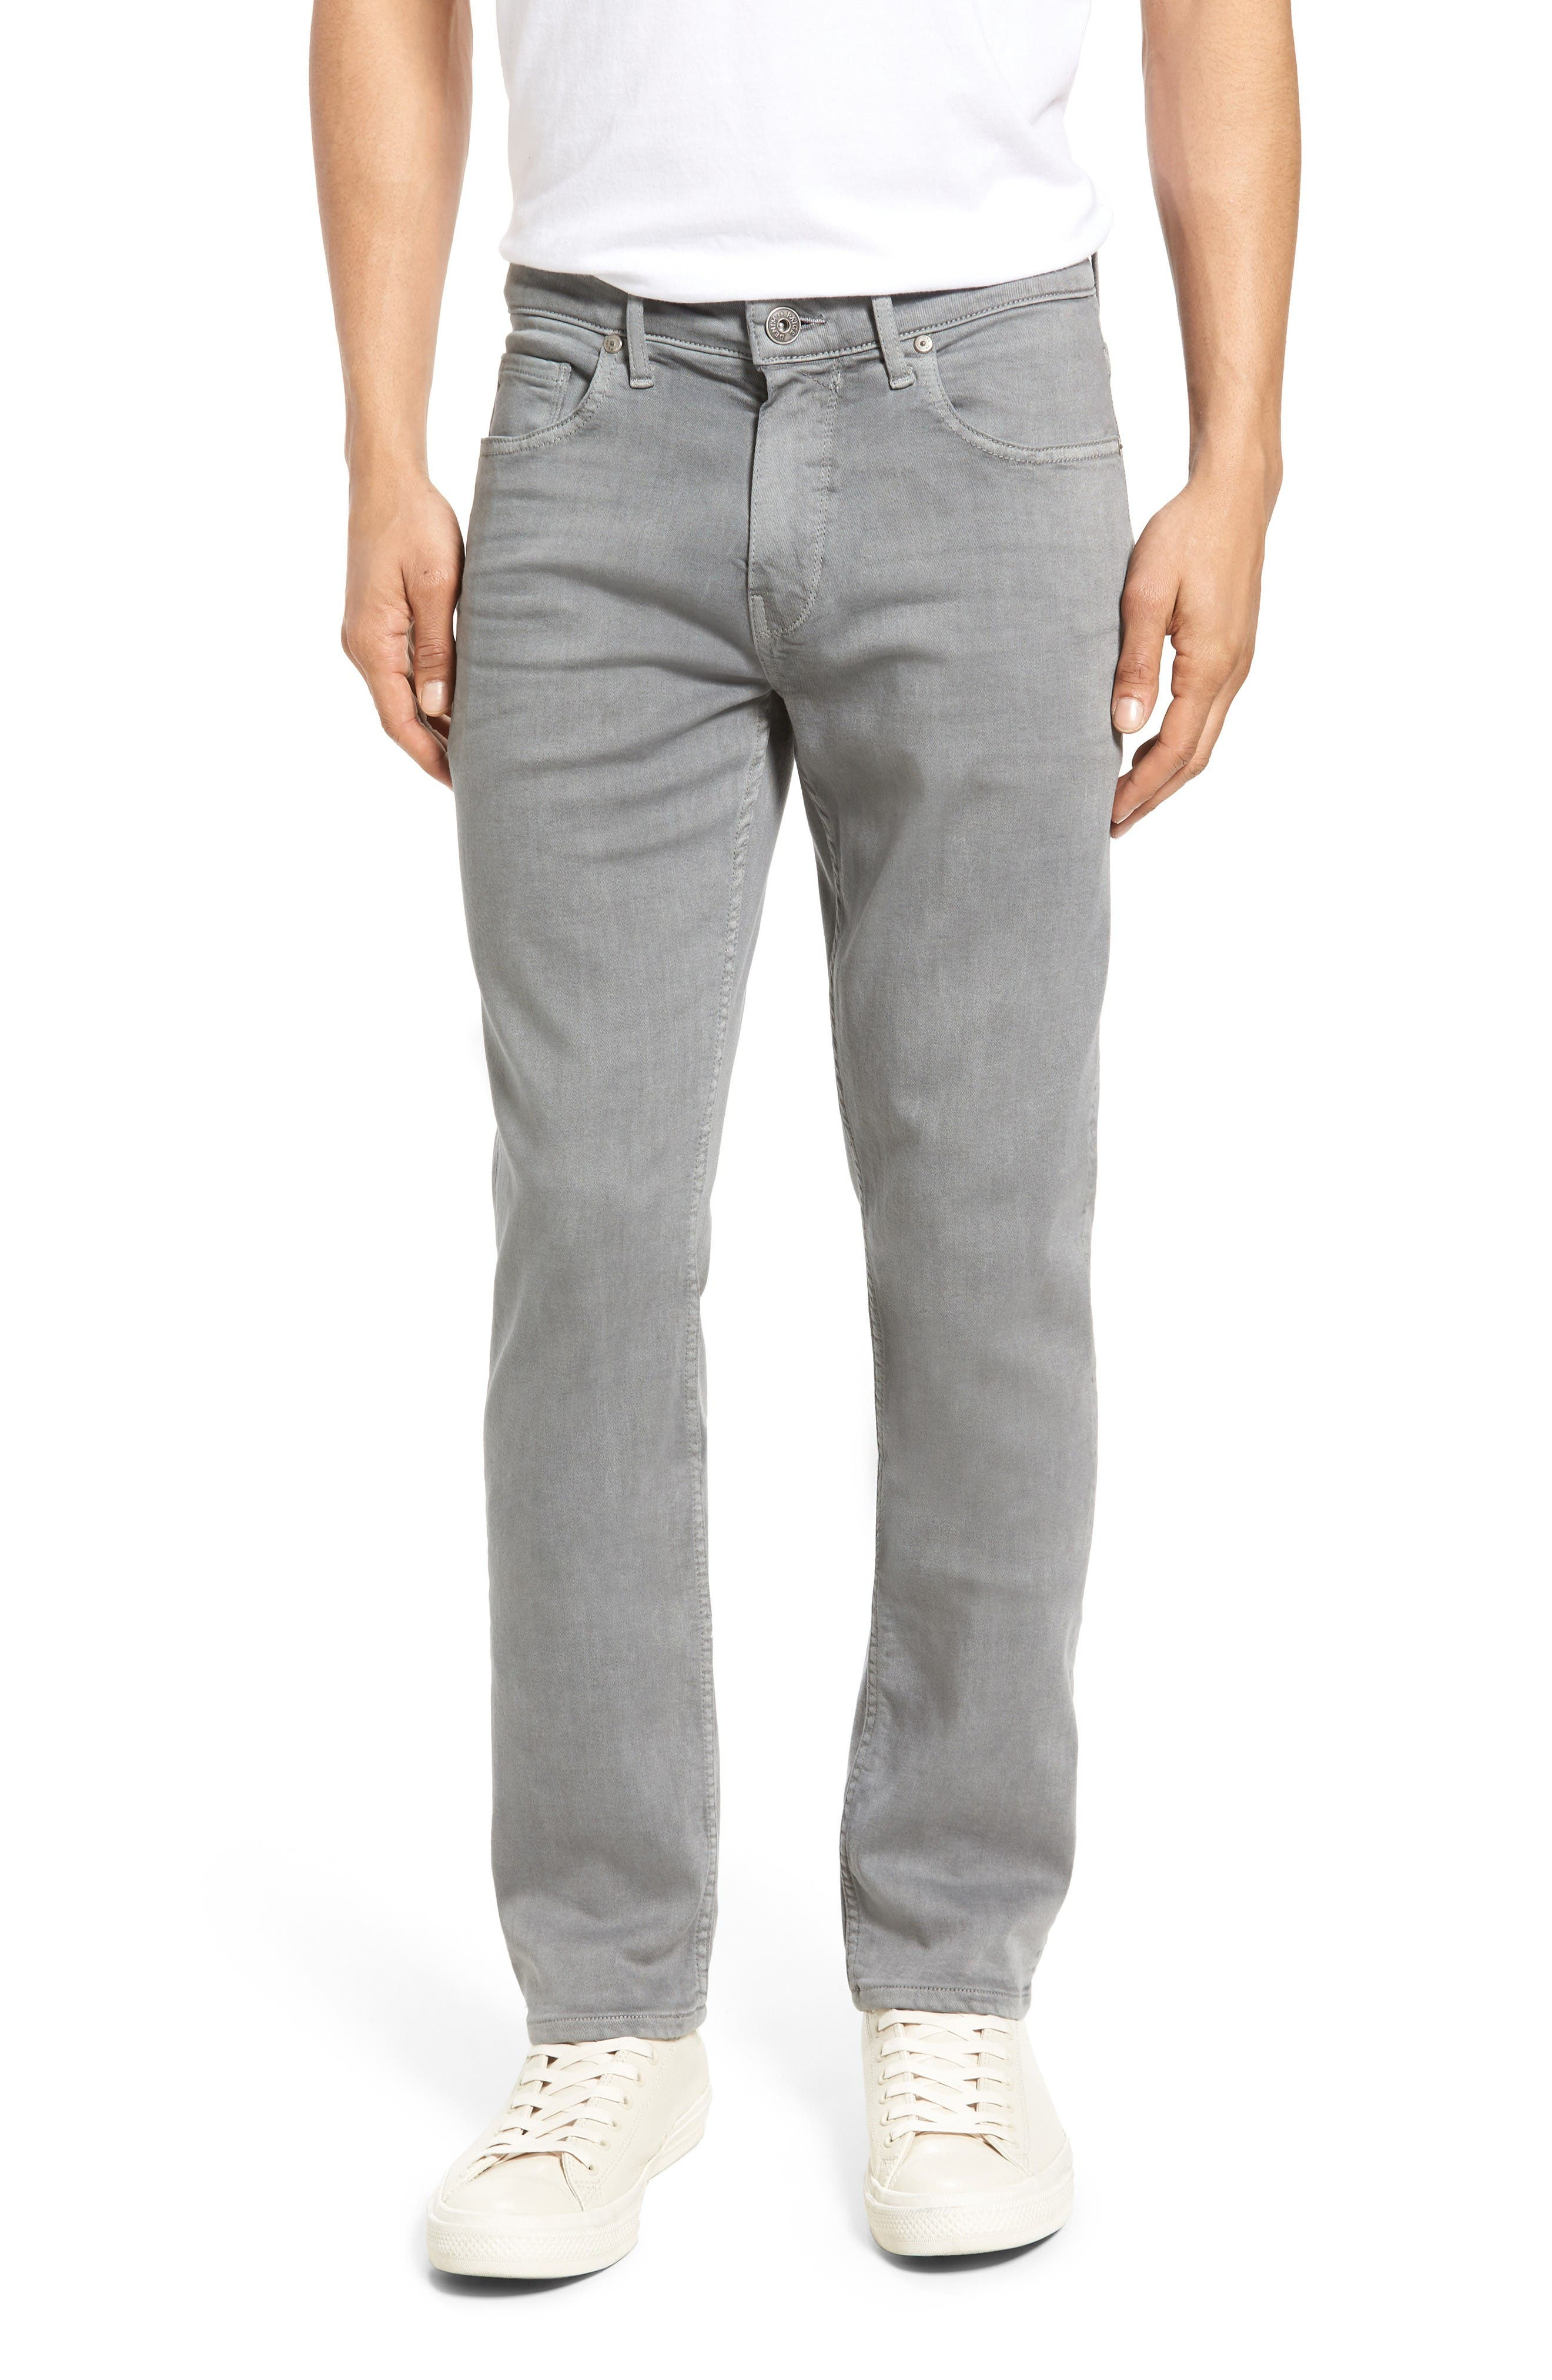 Transcend - Lennox Slim Fit Jeans,                             Main thumbnail 1, color,                             Grey Clay